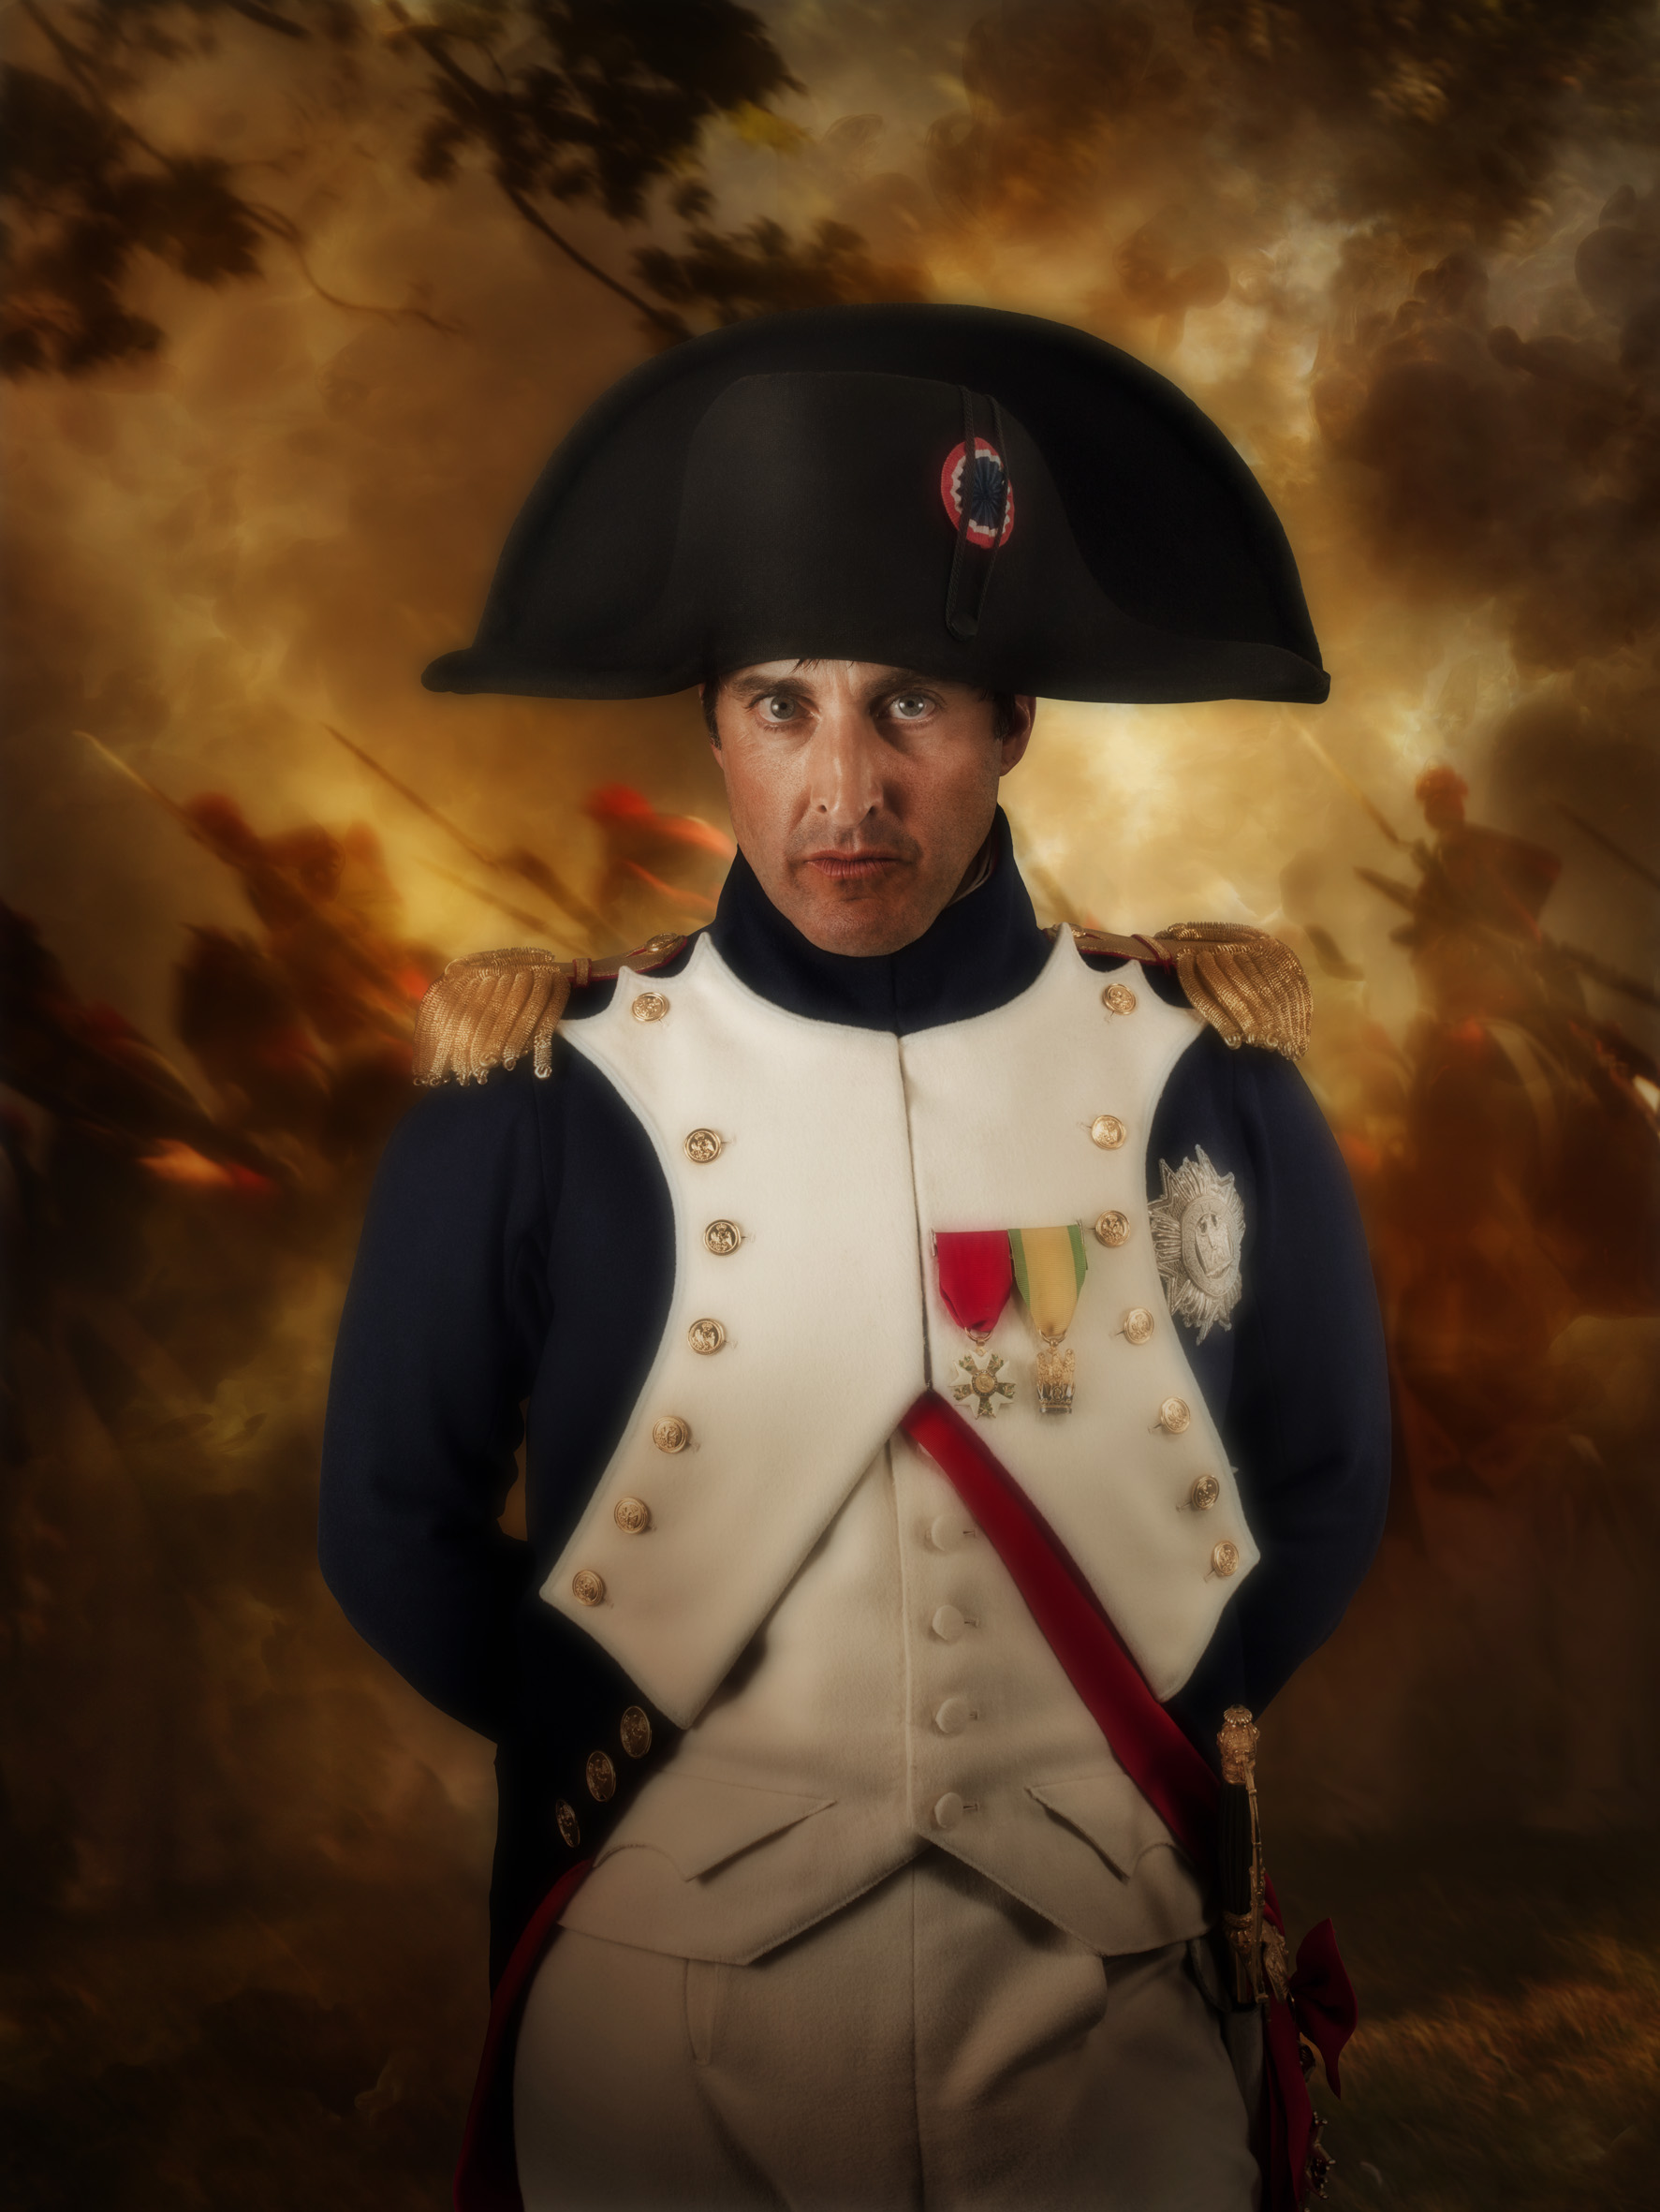 a life and career of napoleon bonaparte This part 1 of a documentary detailing the life and events of napoleon bonaparte  subscribe, comment, like, fav, share.